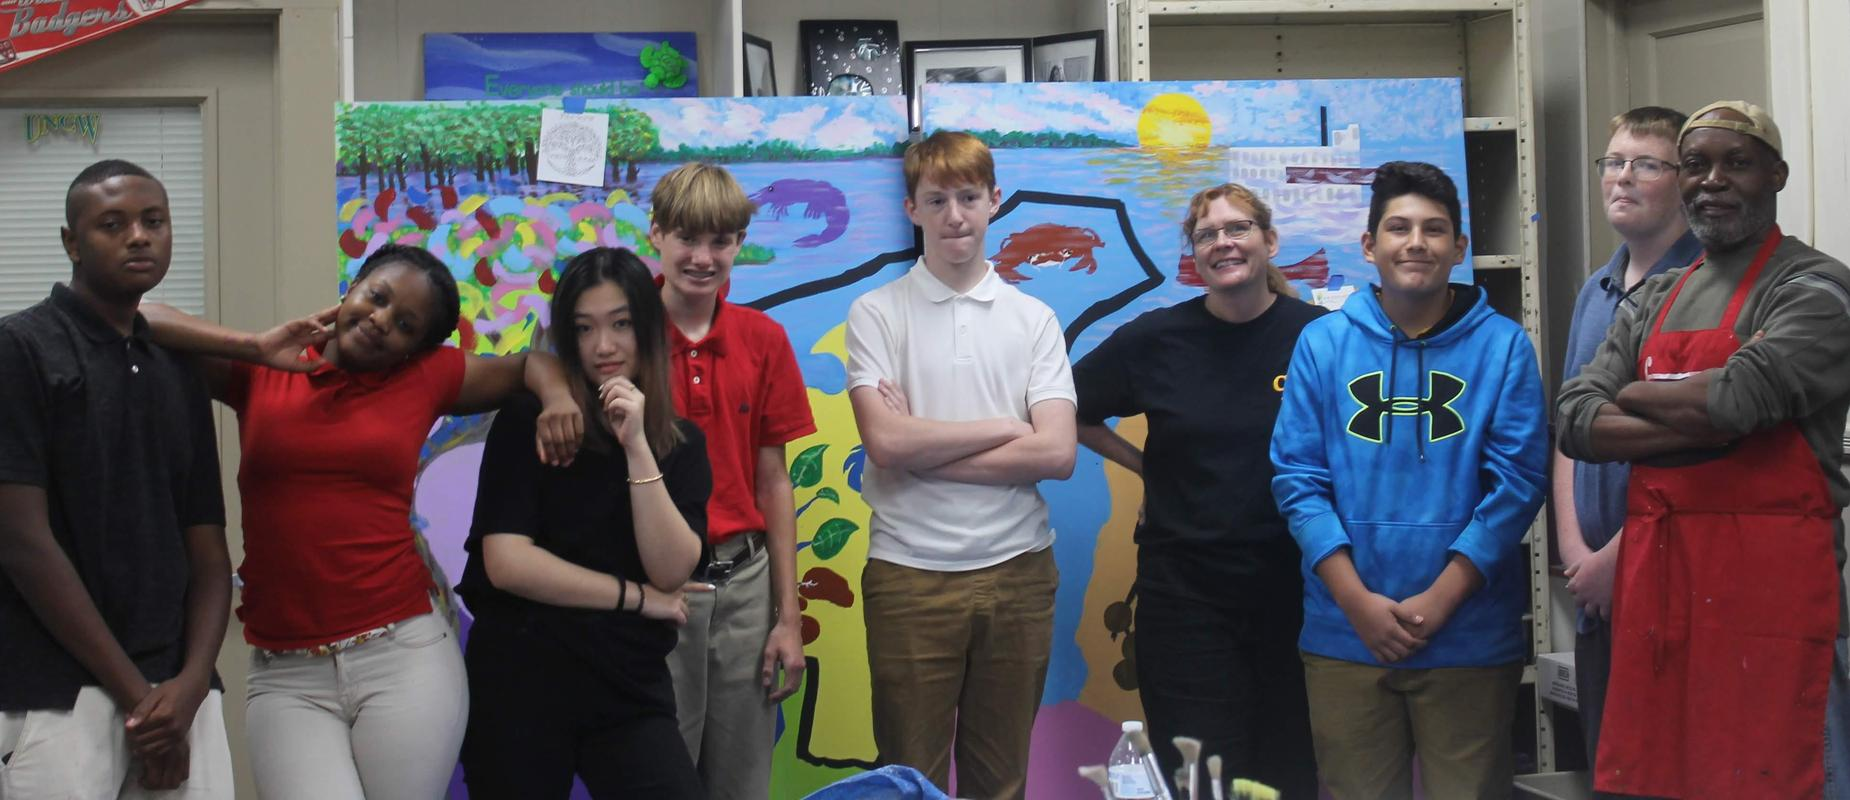 students and instructor standing in front of painted mural